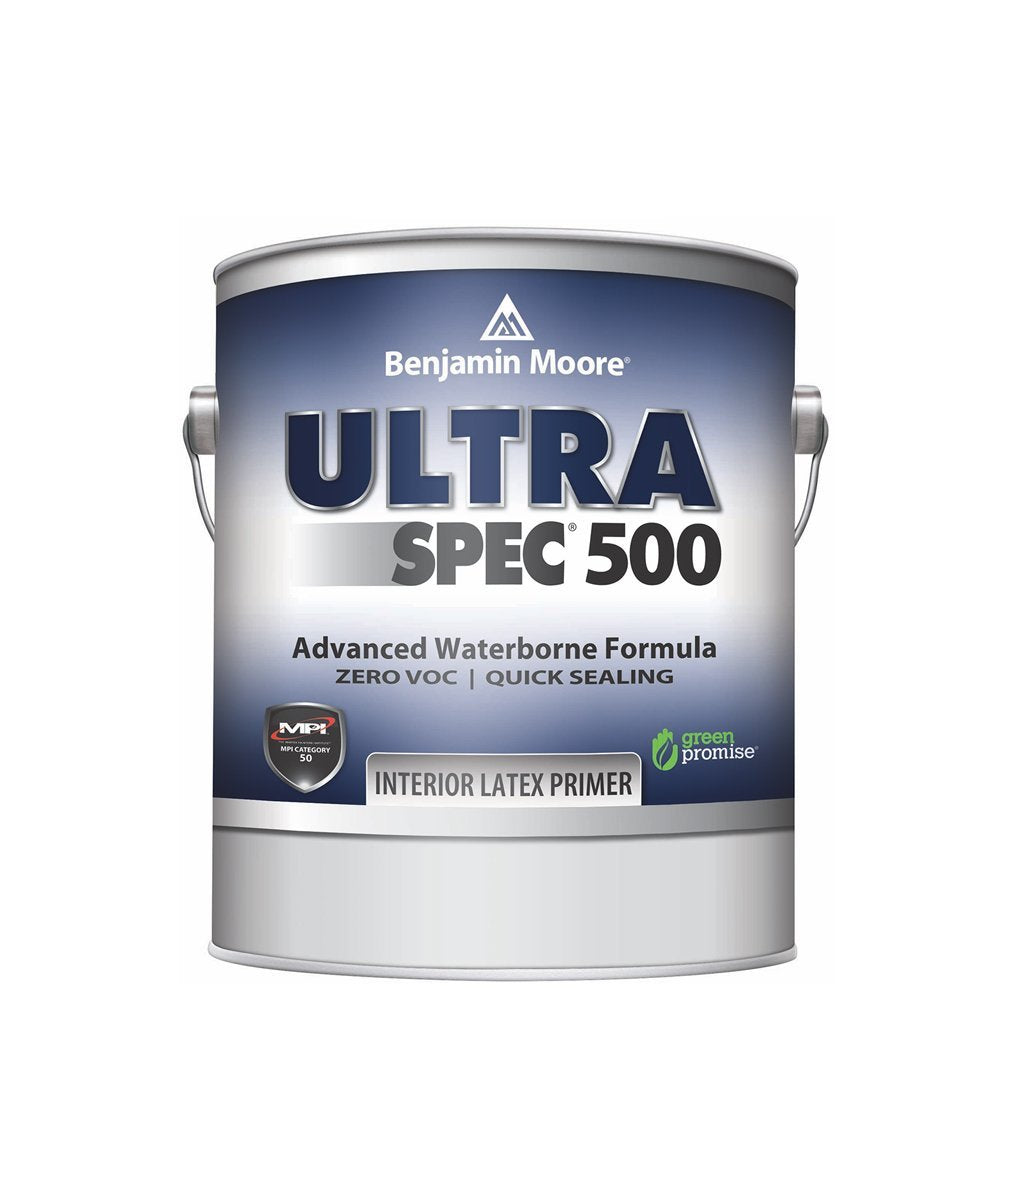 Benjamin Moore Ultra Spec 500 Interior Latex Primer, available at Mallory Paint Stores.